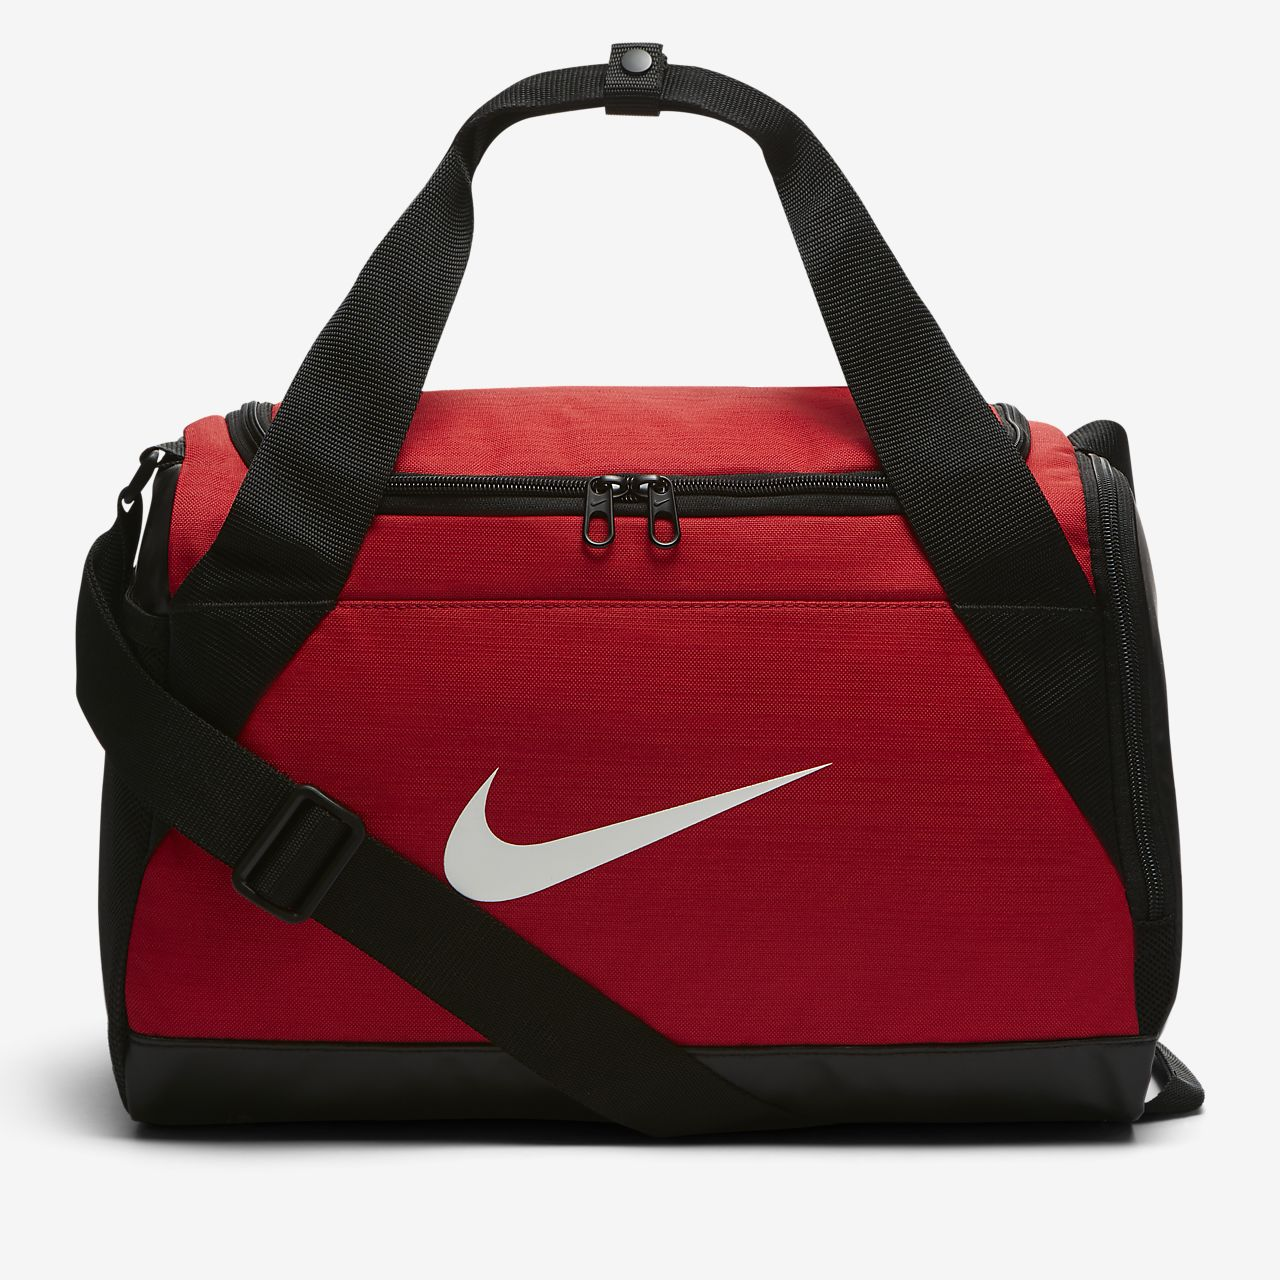 cfa70bbdbf Nike Brasilia Small Duffel Bag Black